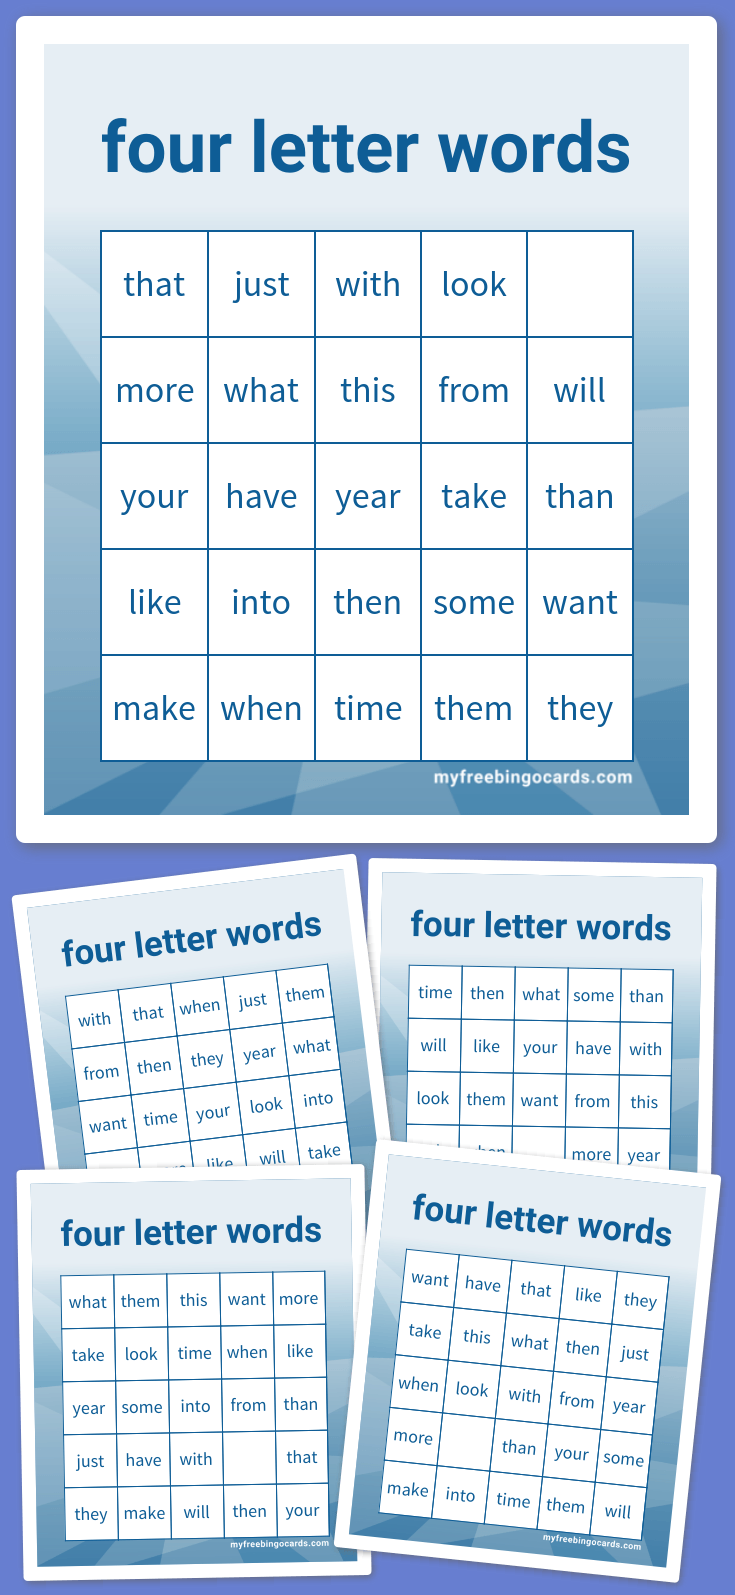 four letter words in english pdf